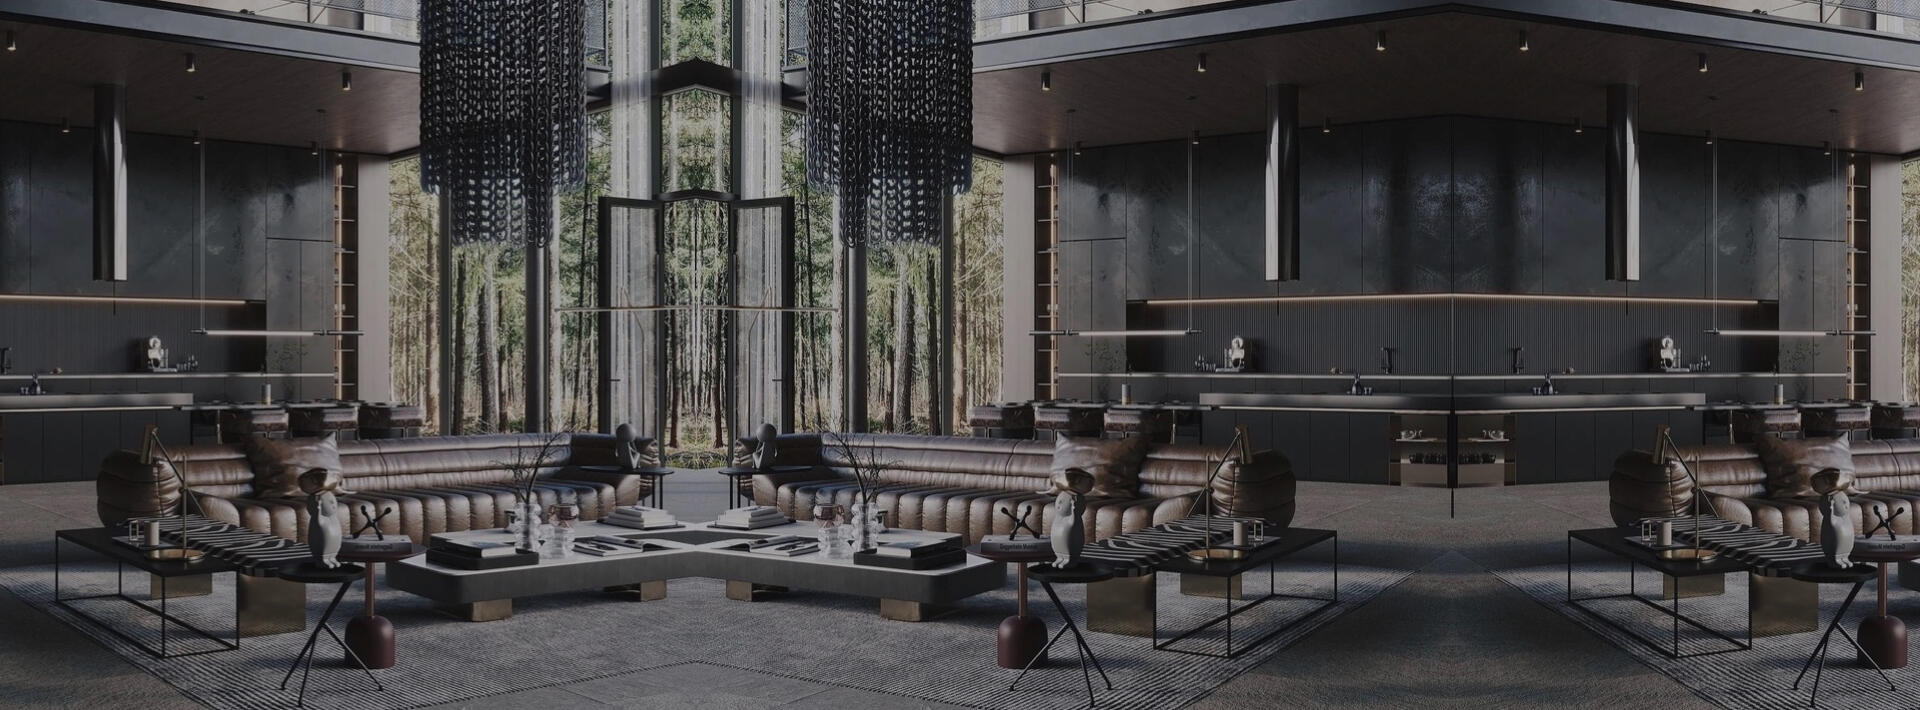 Architect Sarah Habib's project transformed an urban icon into a refuge, keeping all the functionality we already know.